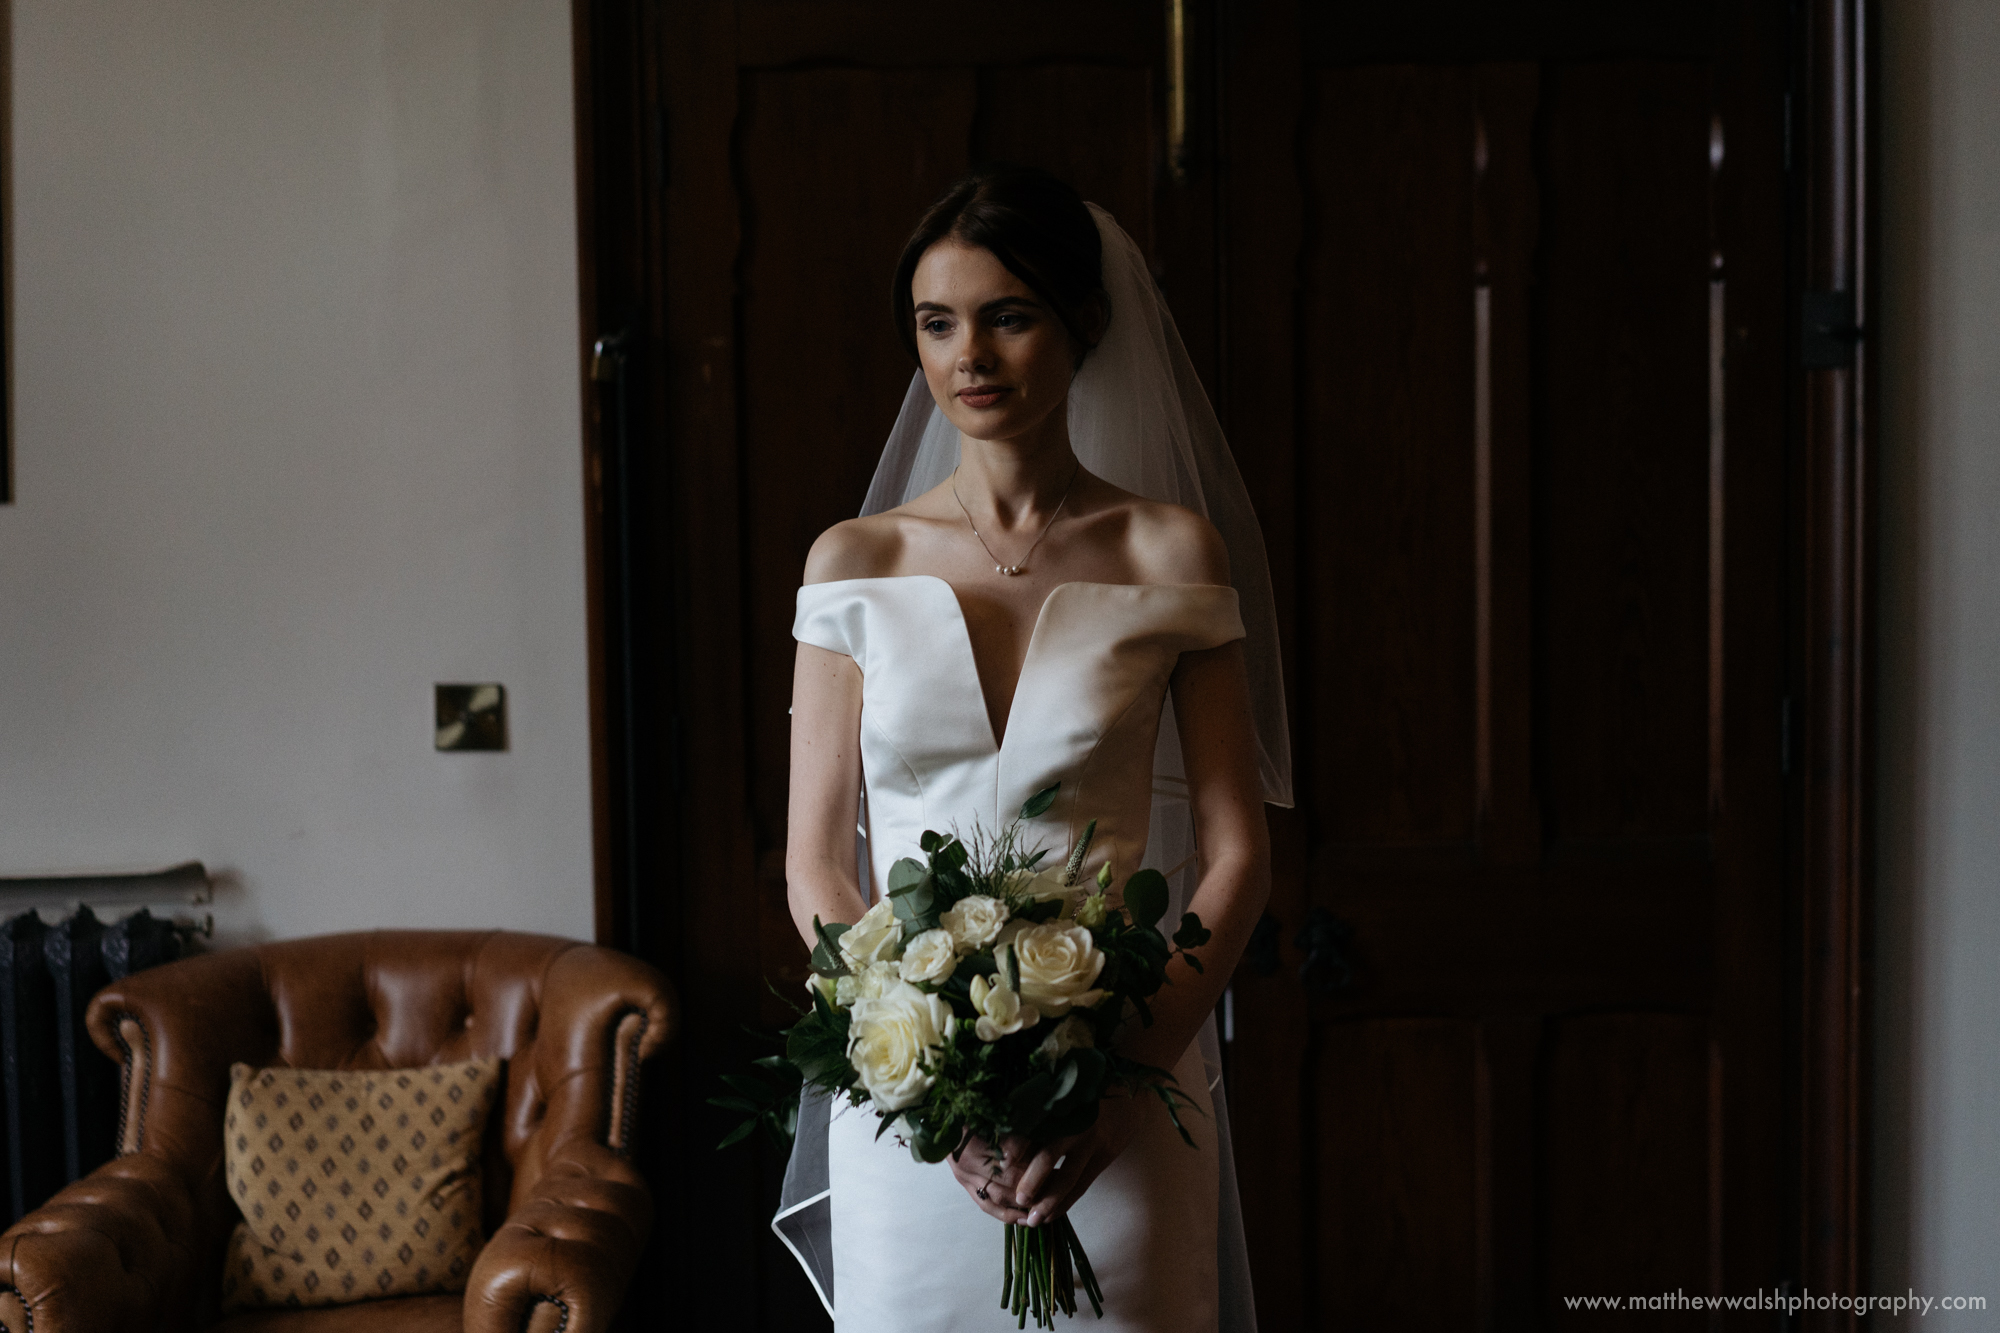 A quick final portrait of the bride before she becomes a married woman